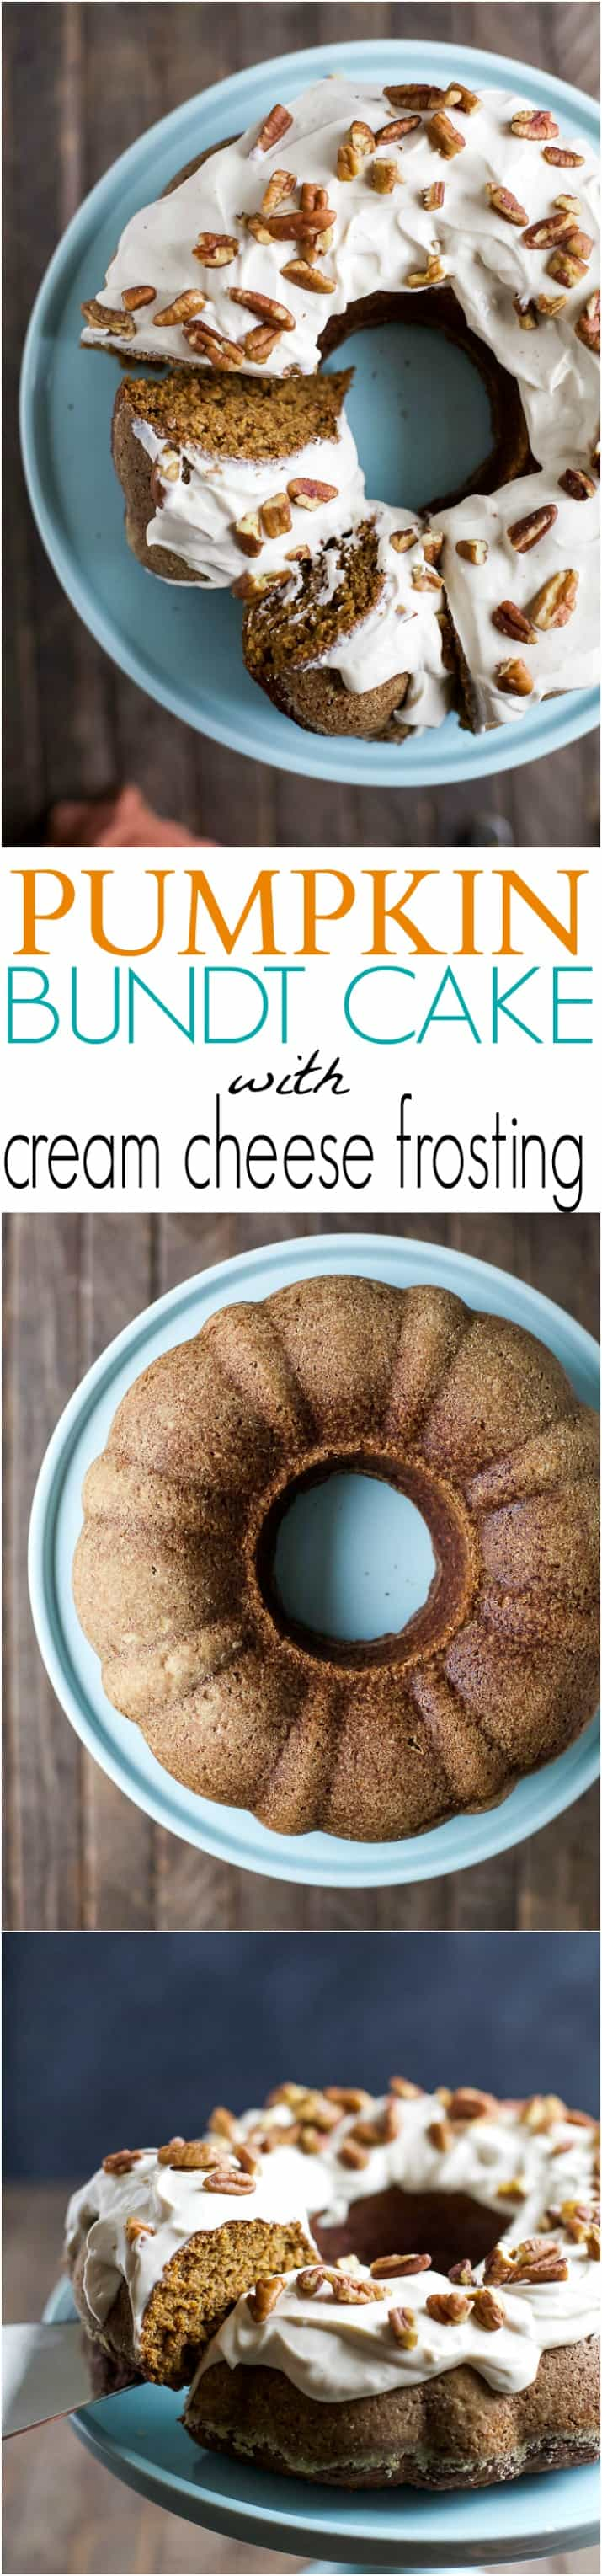 PUMPKIN ... the star of fall recipes and definitely a shining star in this Moist Pumpkin Bundt Cake topped with a light Cream Cheese Frosting. You're gonna love the secret ingredient in the frosting to make it lighter! | joyfulhealthyeats.com